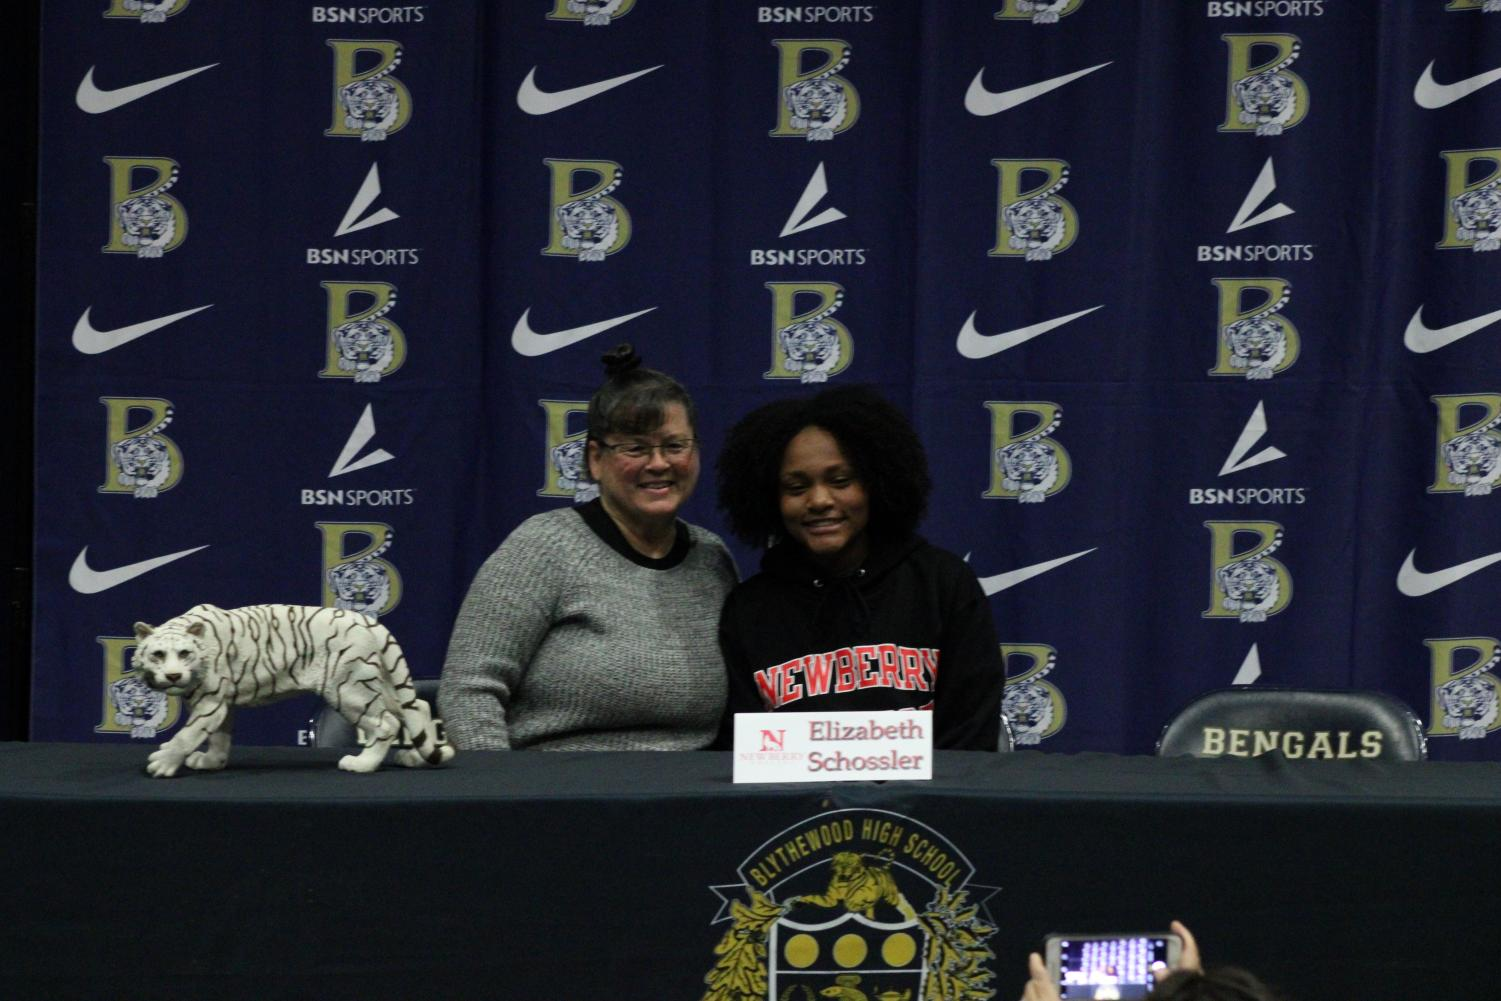 Elizabeth+Schossler+signs+to+play+soccer+at+Newberry+College.